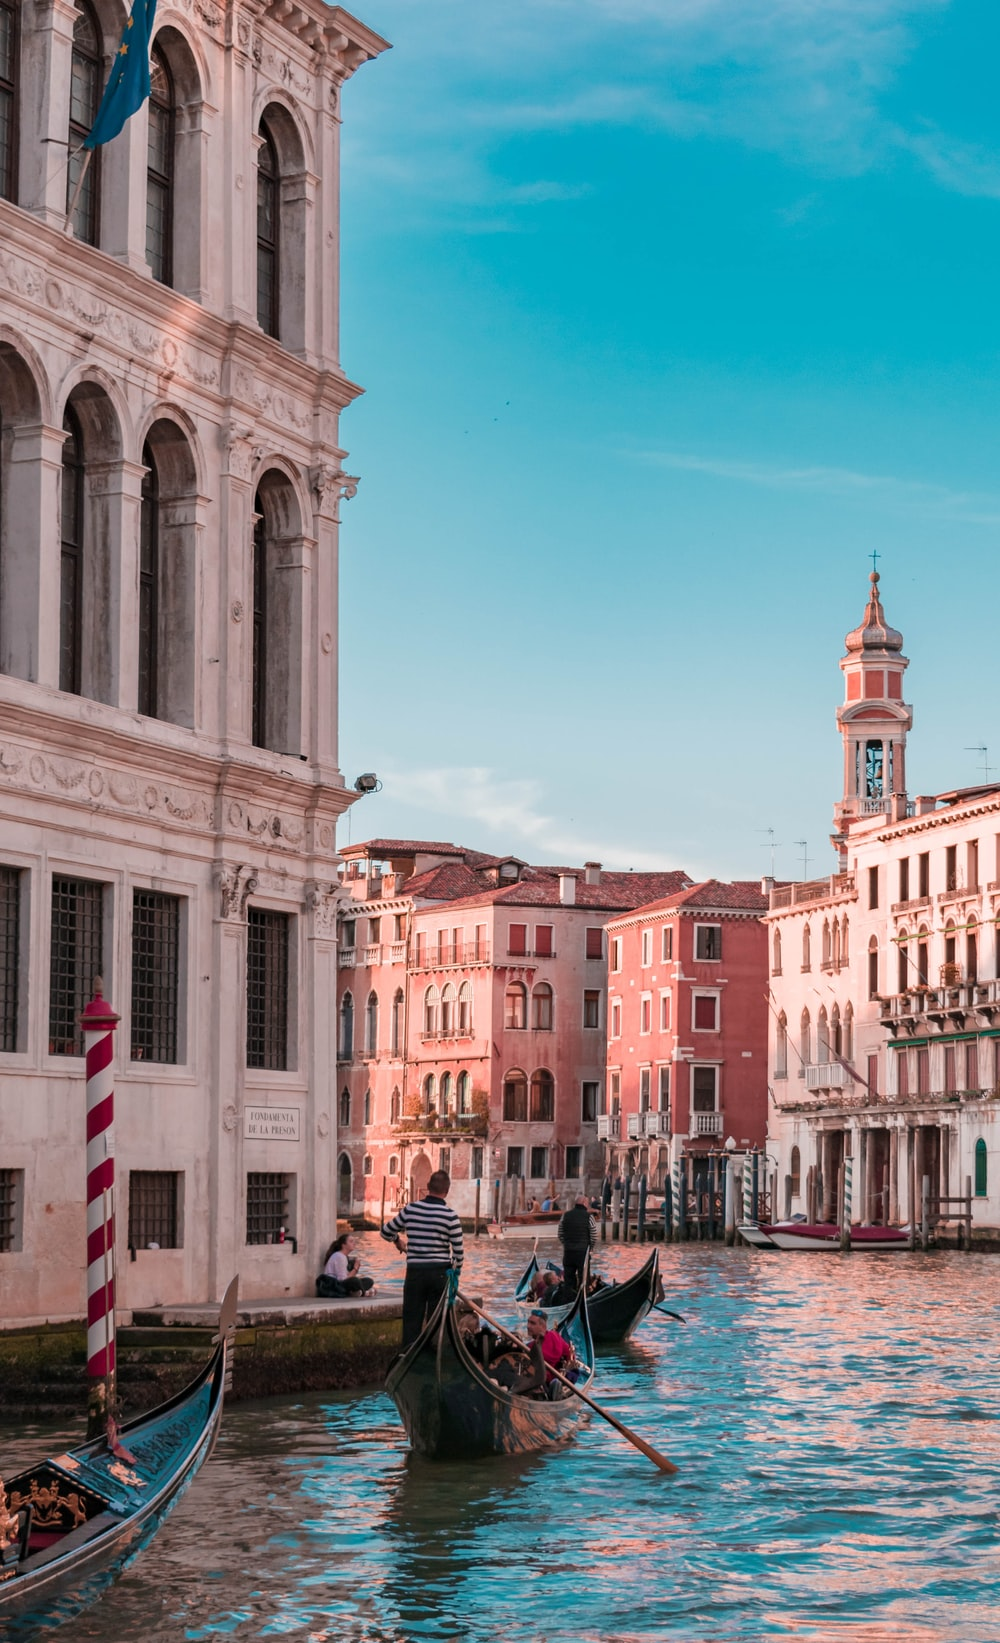 Gondola, venice, italy and boat | HD photo by Damiano Baschiera (@damiano_baschiera) on Unsplash